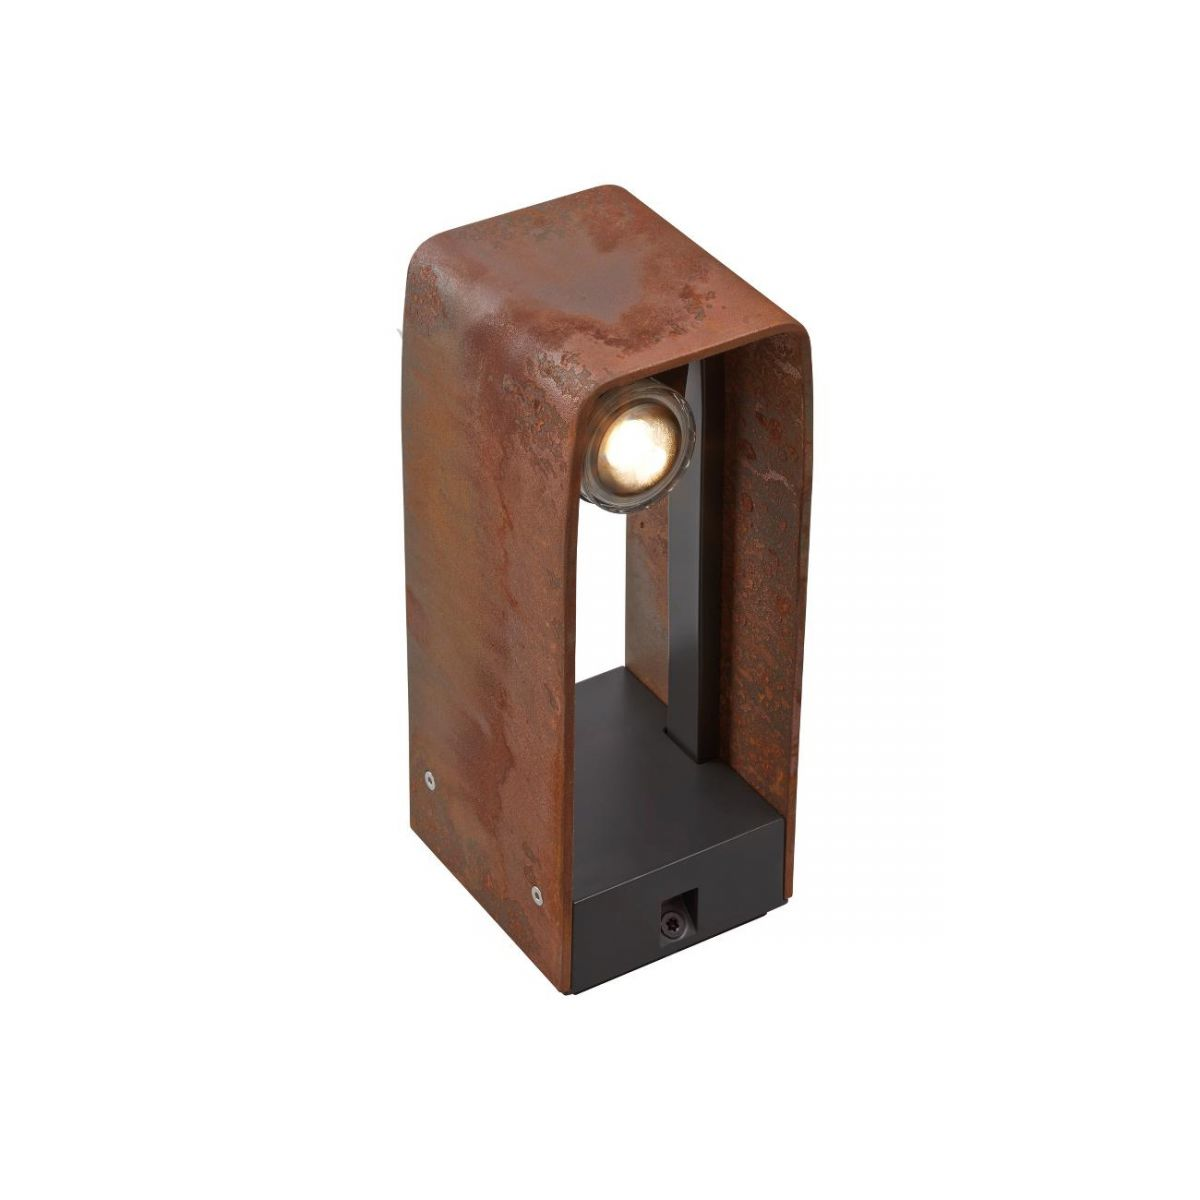 in-lite Ace alu corten